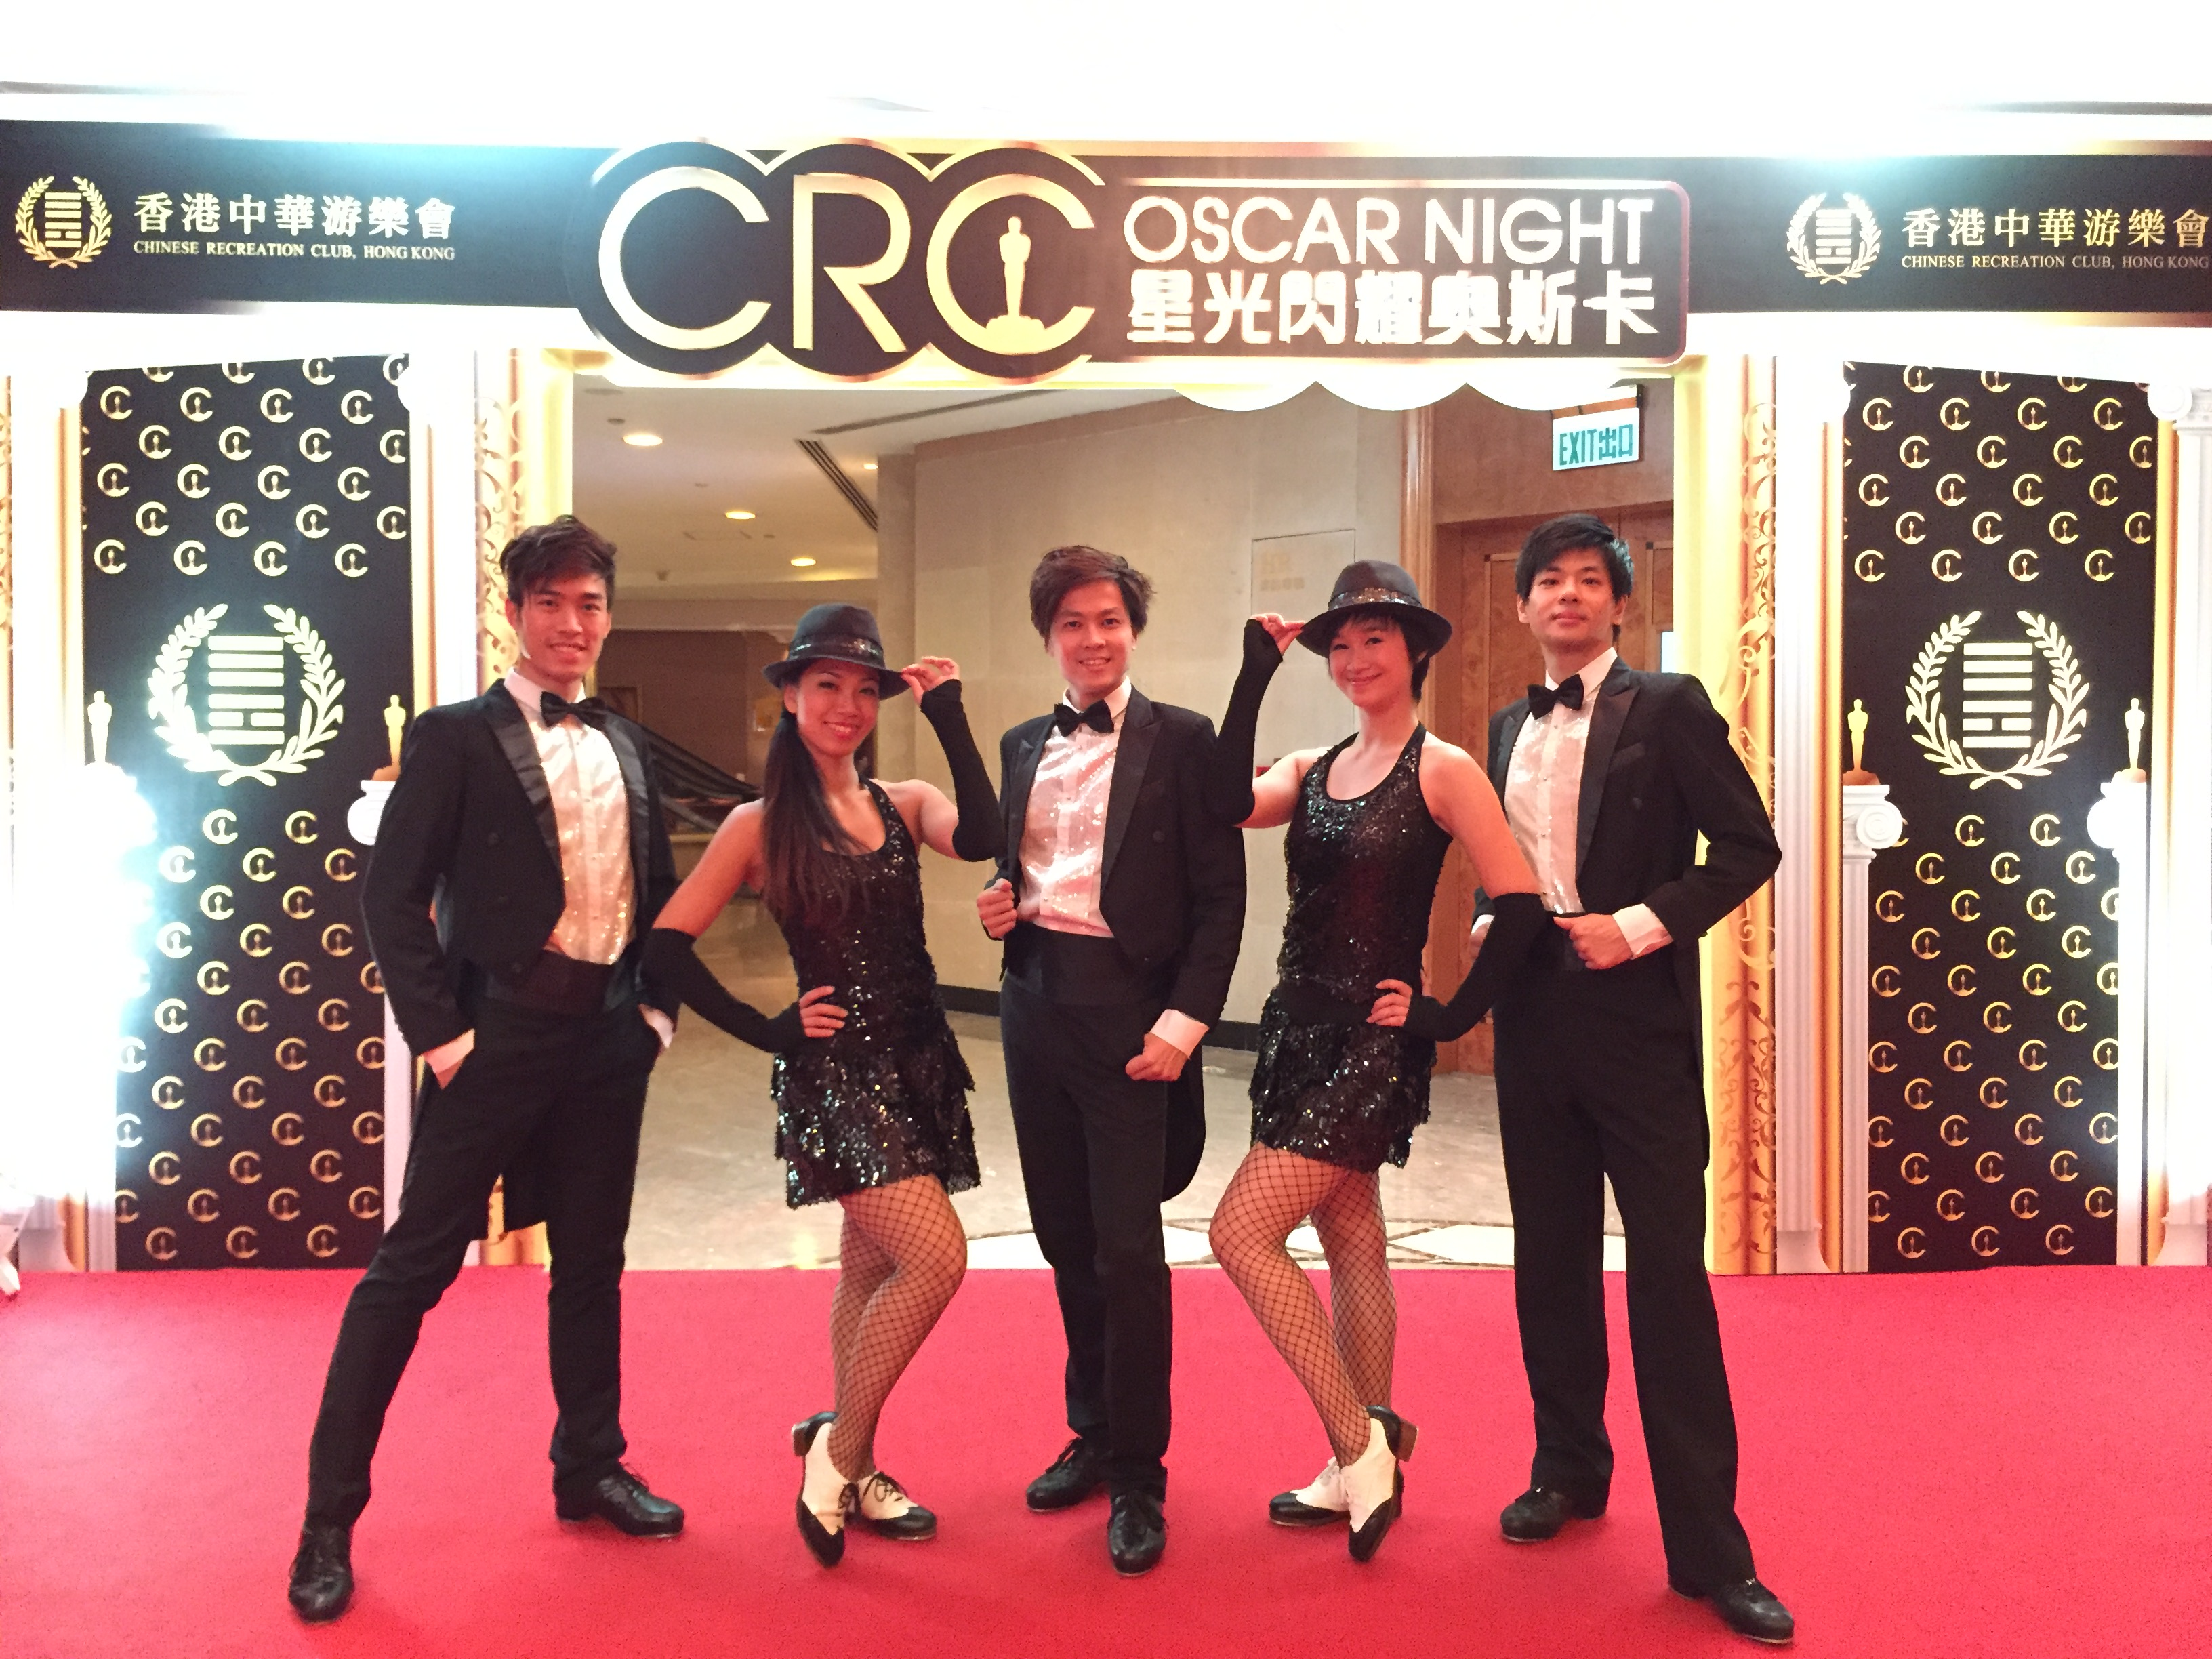 Countdown tap show CRC